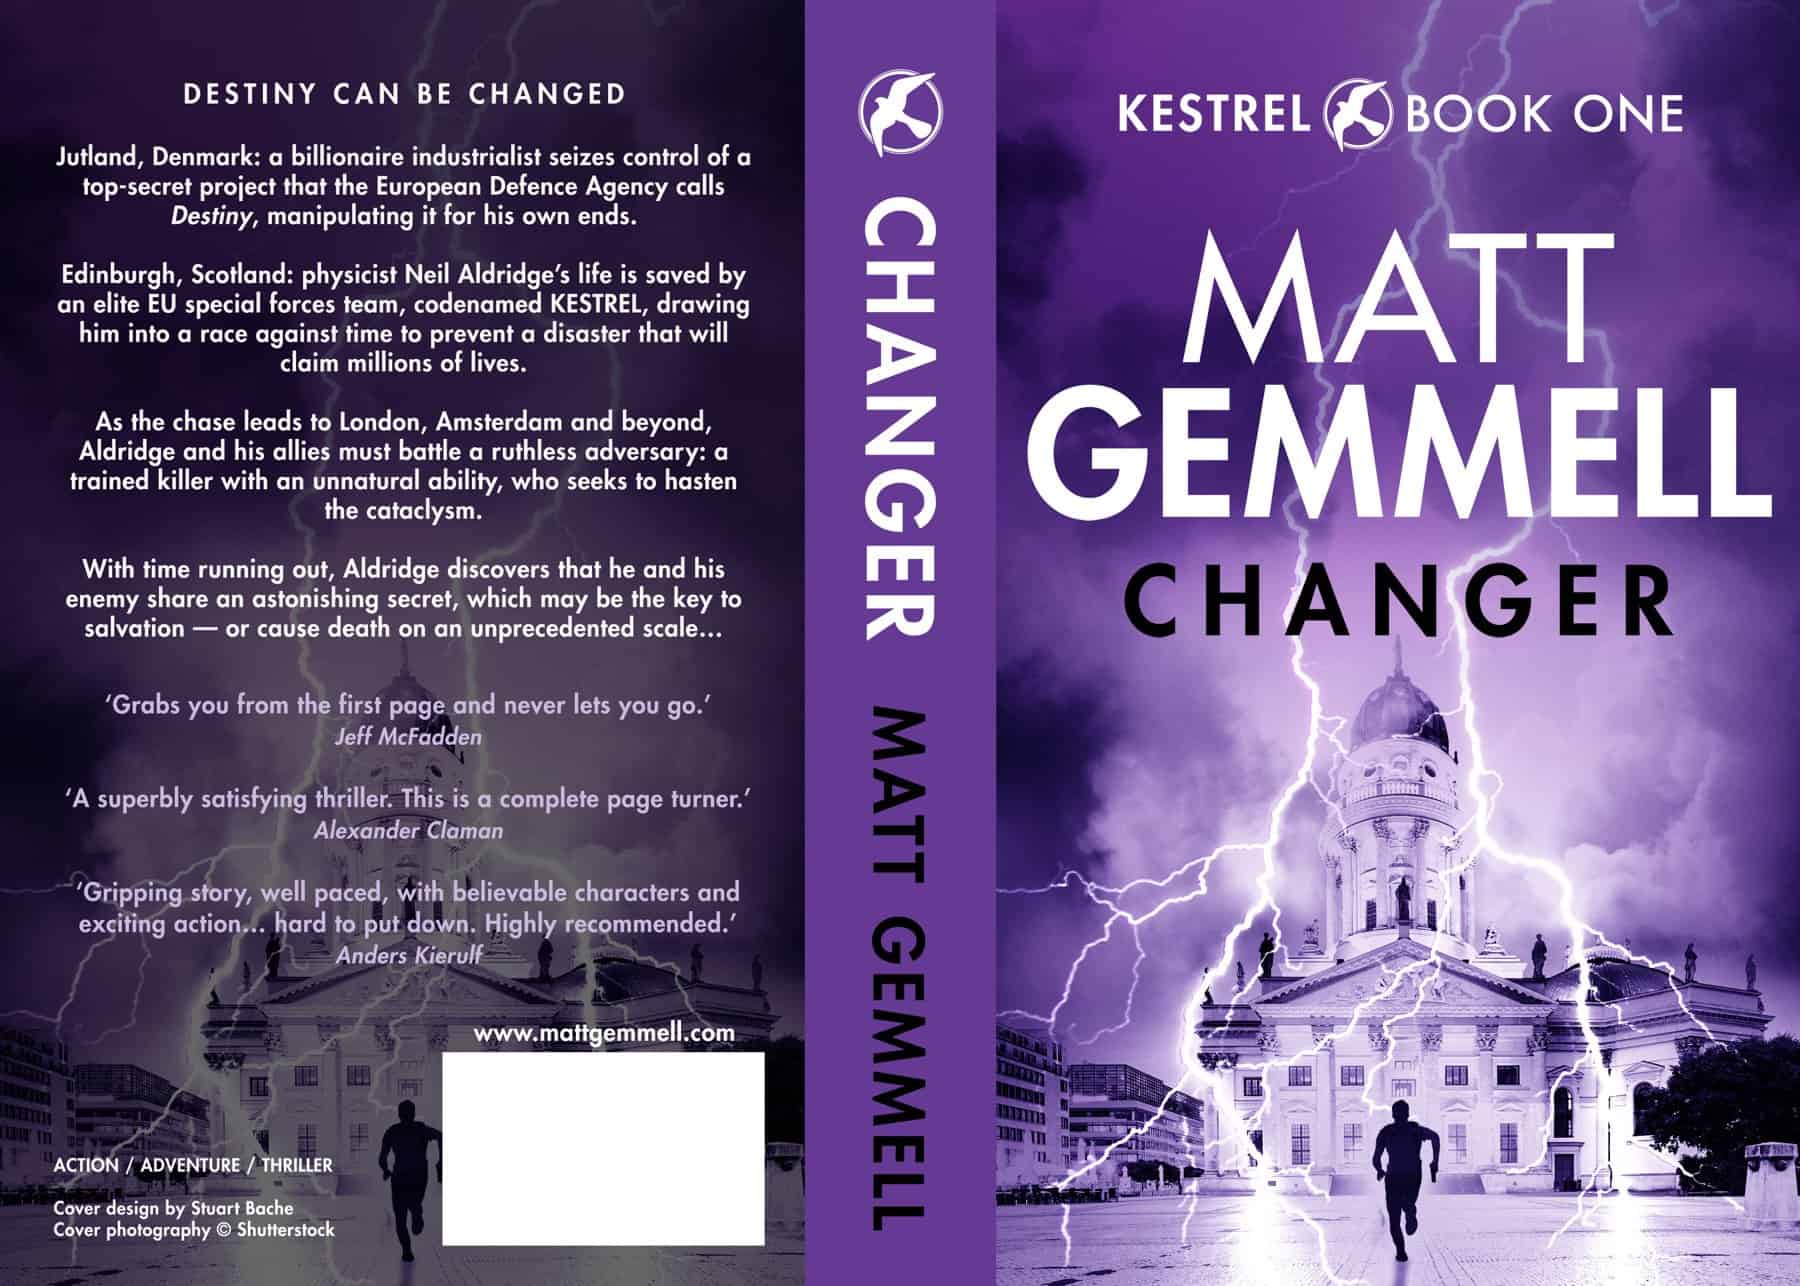 changer-backcover